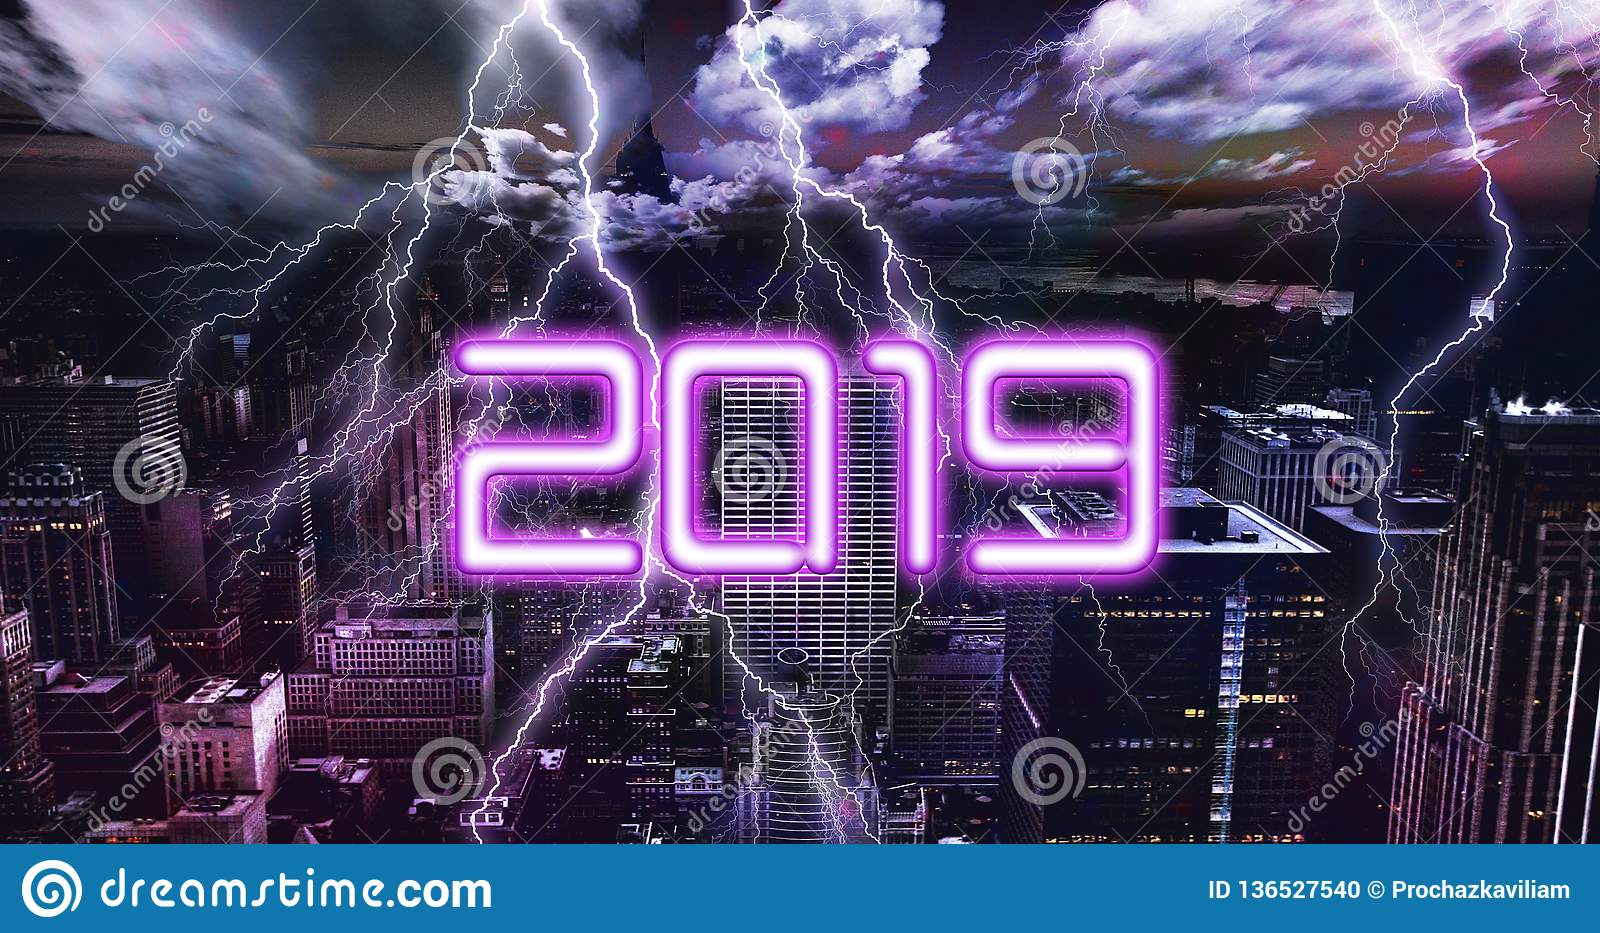 5 045 Lightning Wallpaper Photos Free Royalty Free Stock Photos From Dreamstime